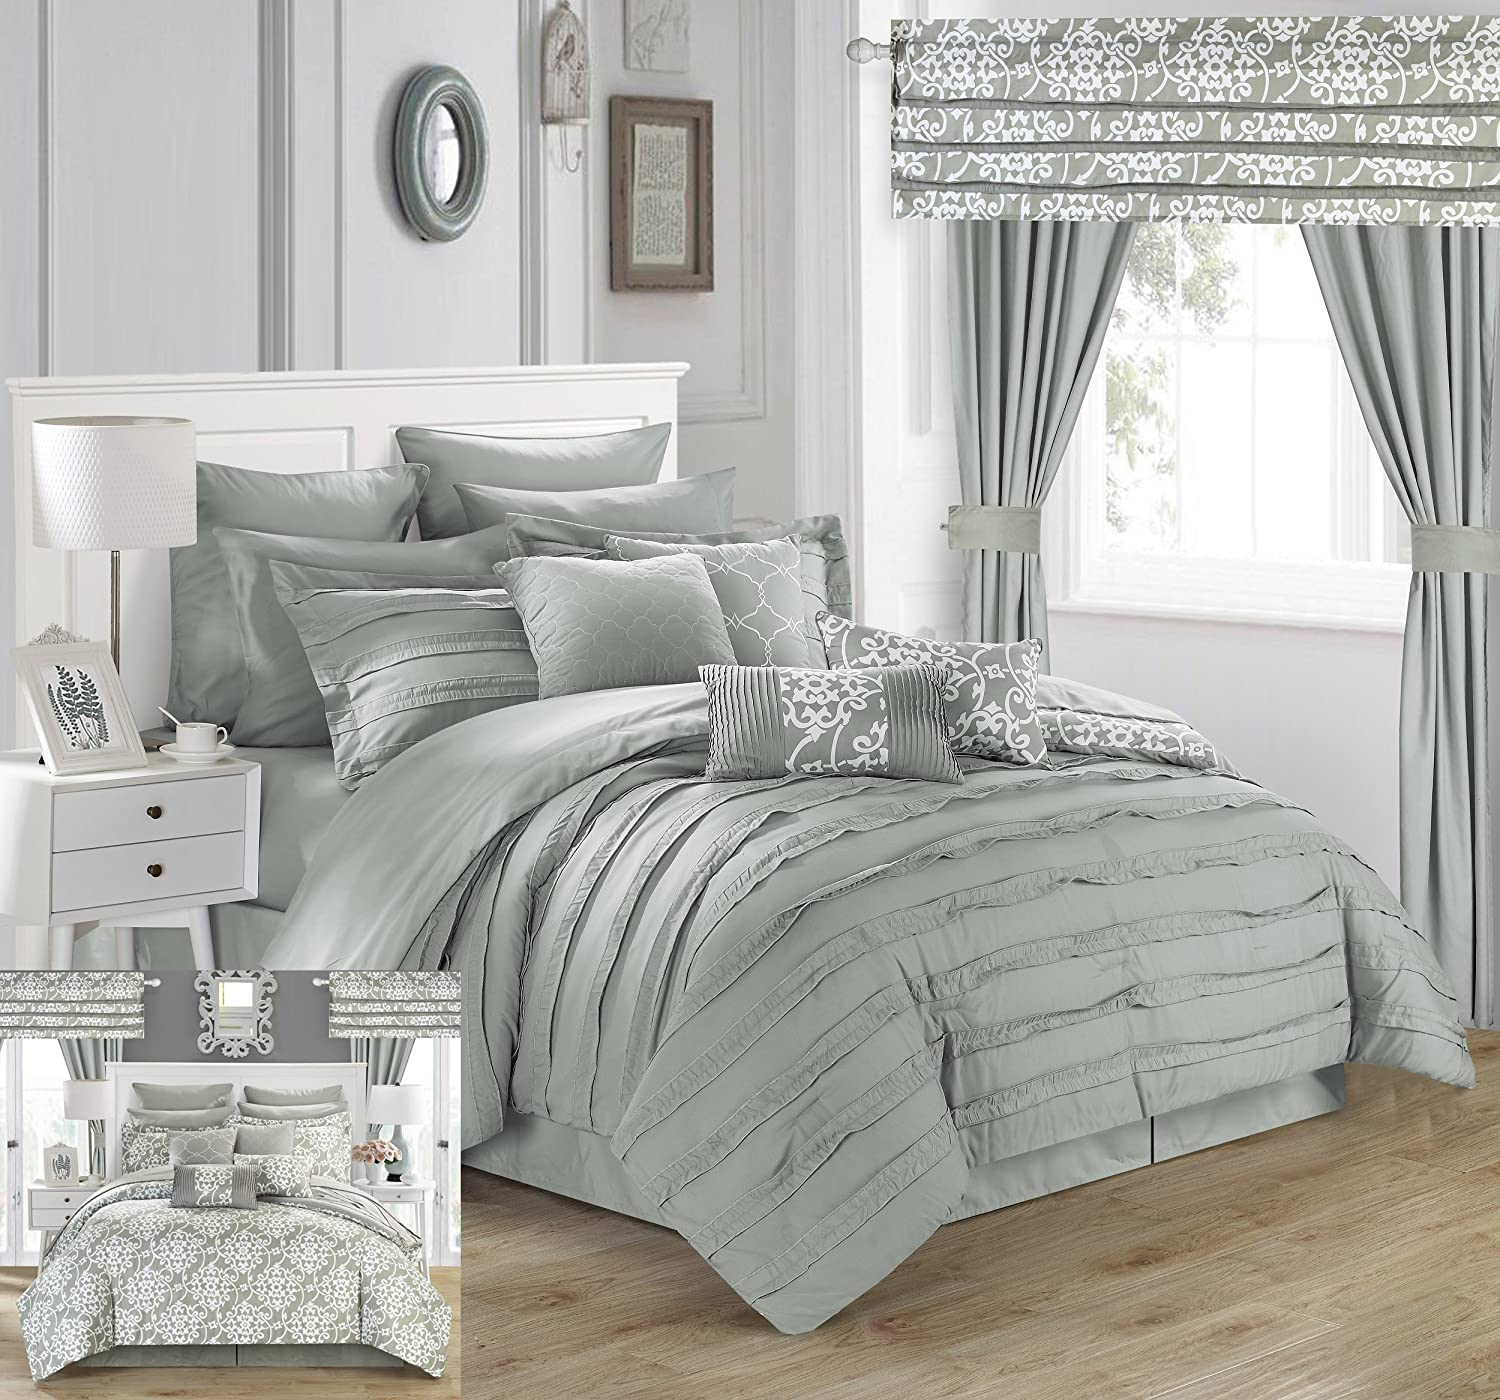 captivating bedroom silver master comforter king and gold satin set sets pin luxury for bedding